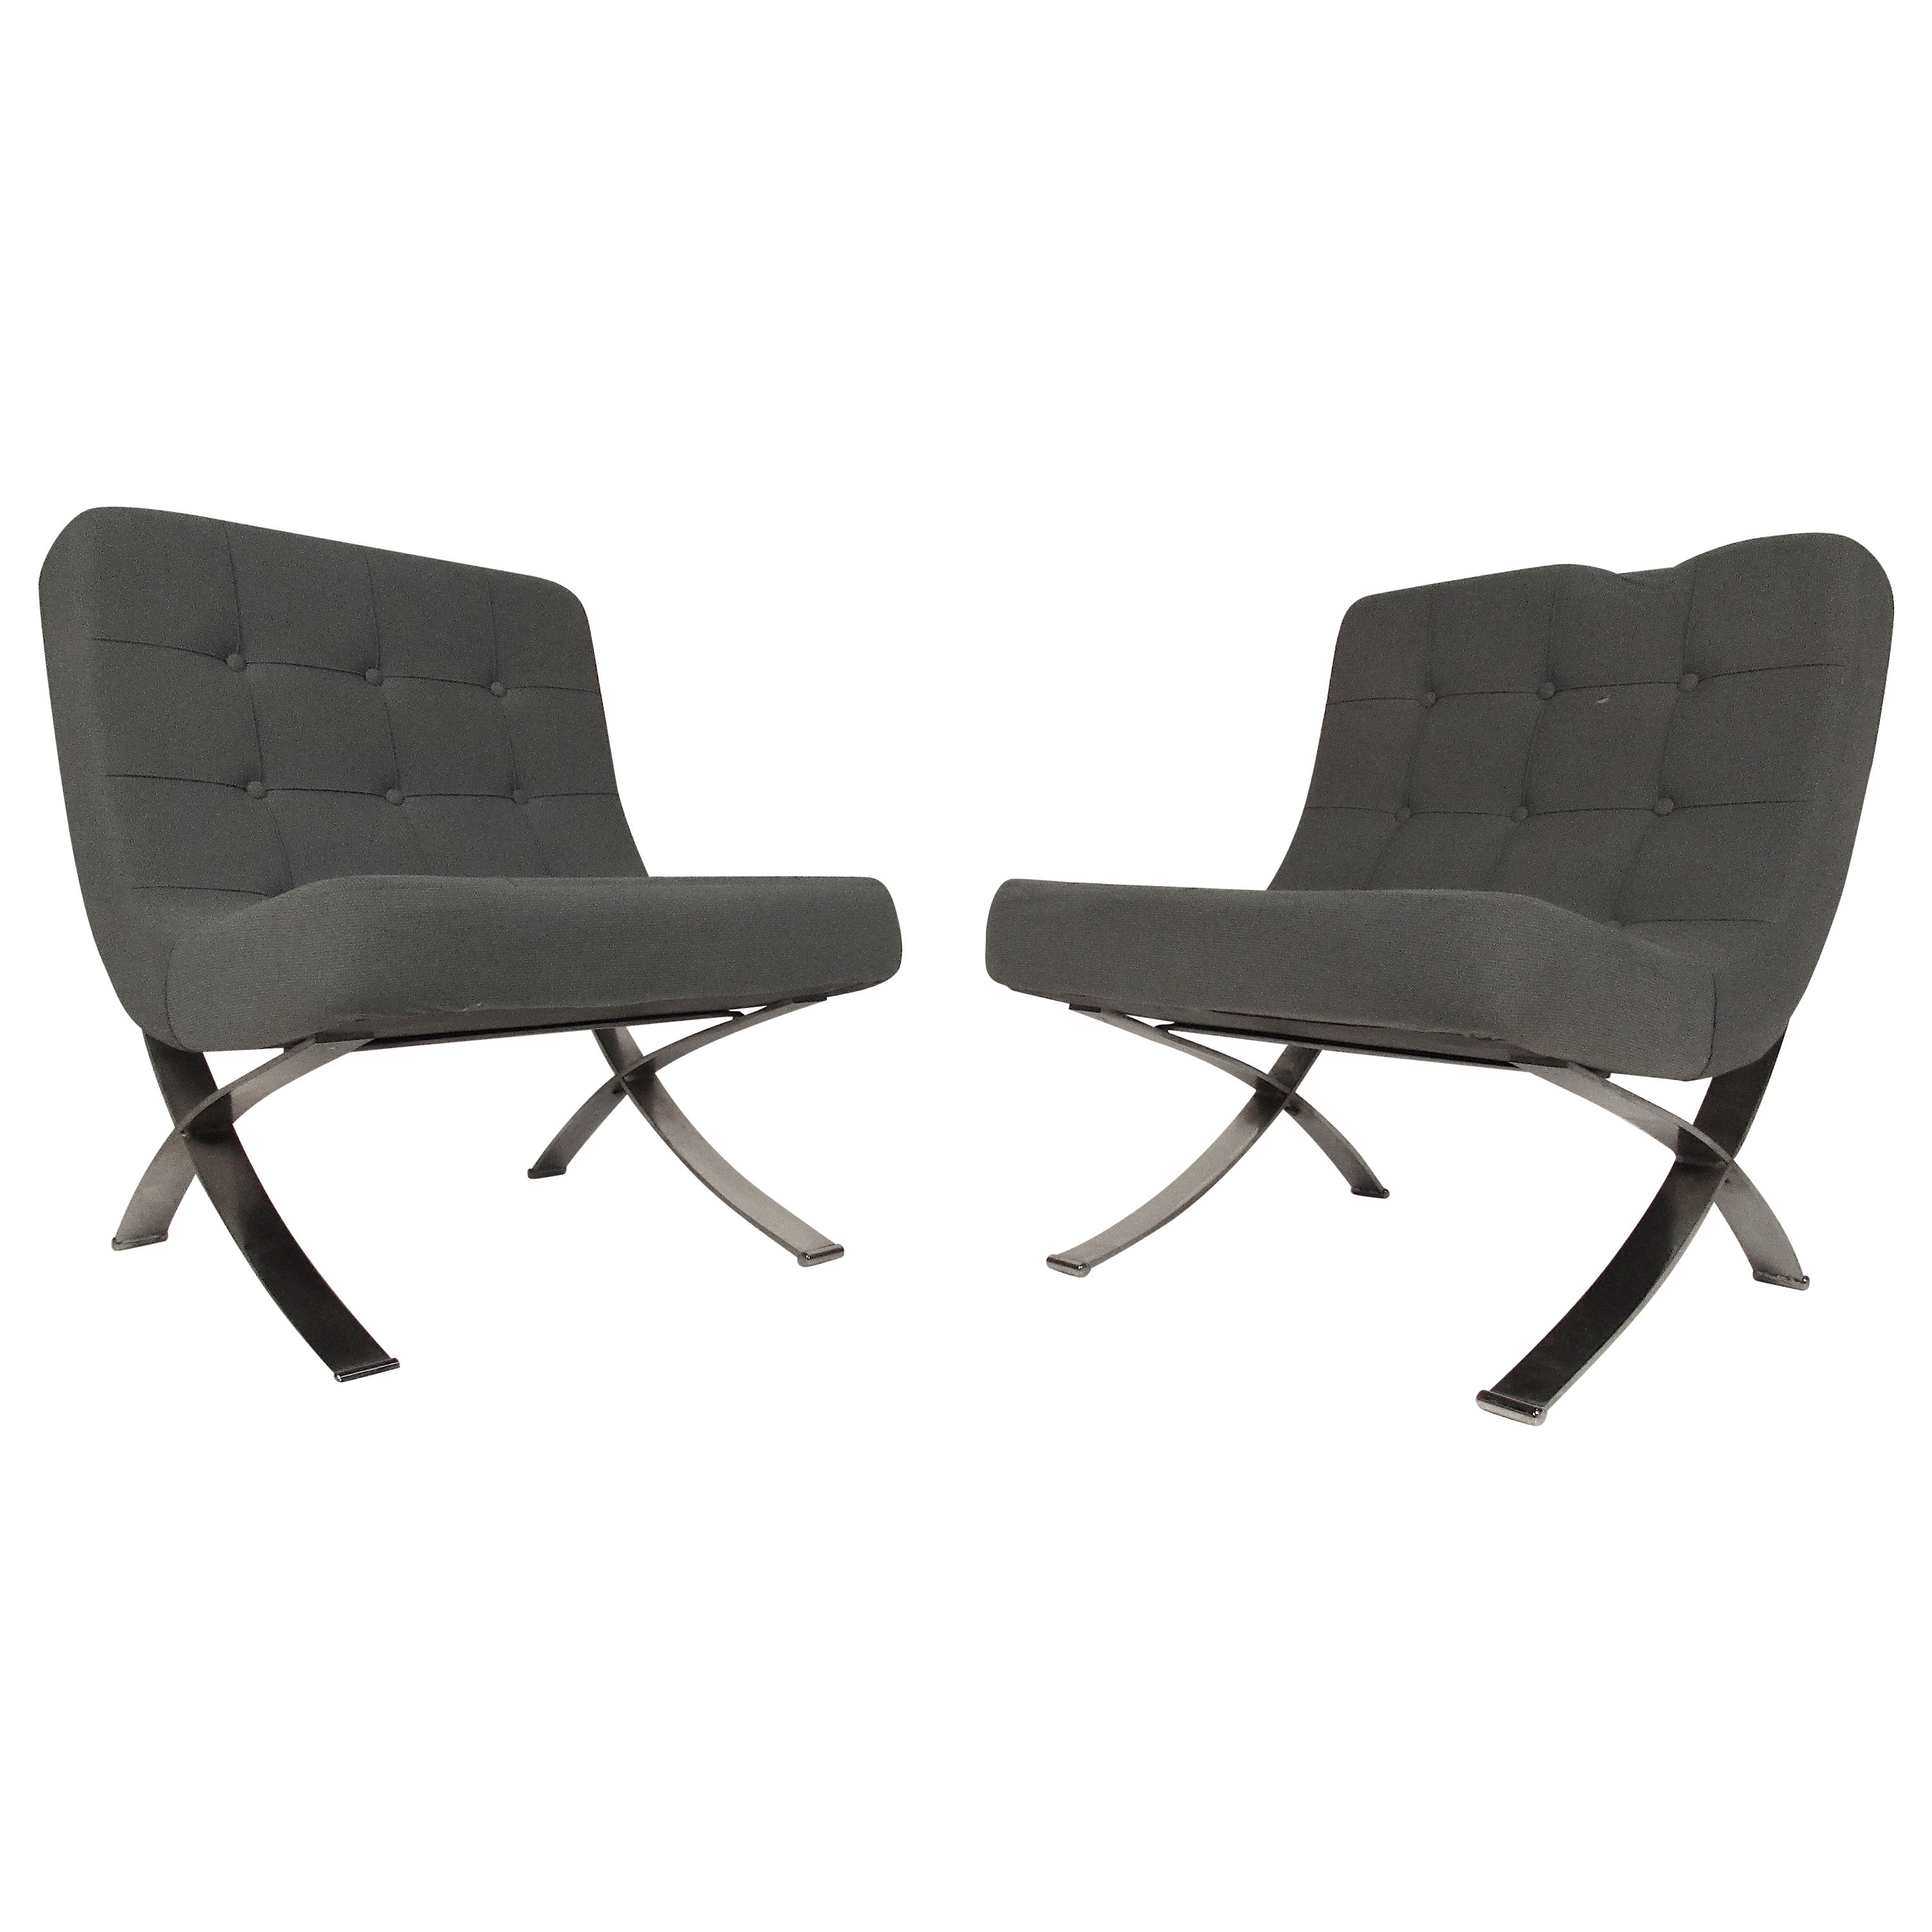 Pair of Vintage Modern Barcelona Style Slipper Lounge Chairs